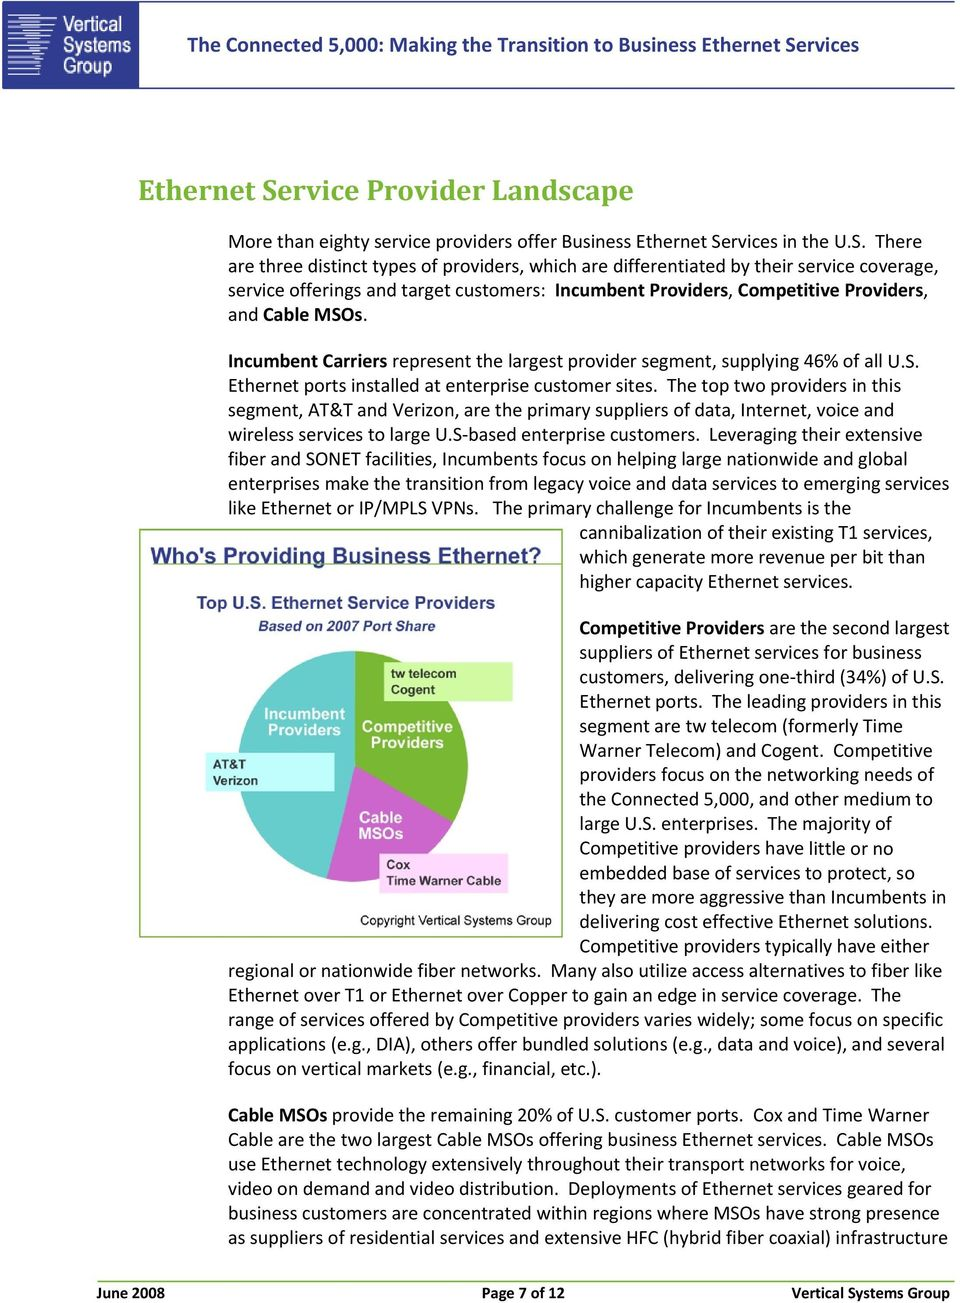 There are three distinct types of providers, which are differentiated by their service coverage, service offerings and target customers: Incumbent Providers, Competitive Providers, and Cable MSOs.